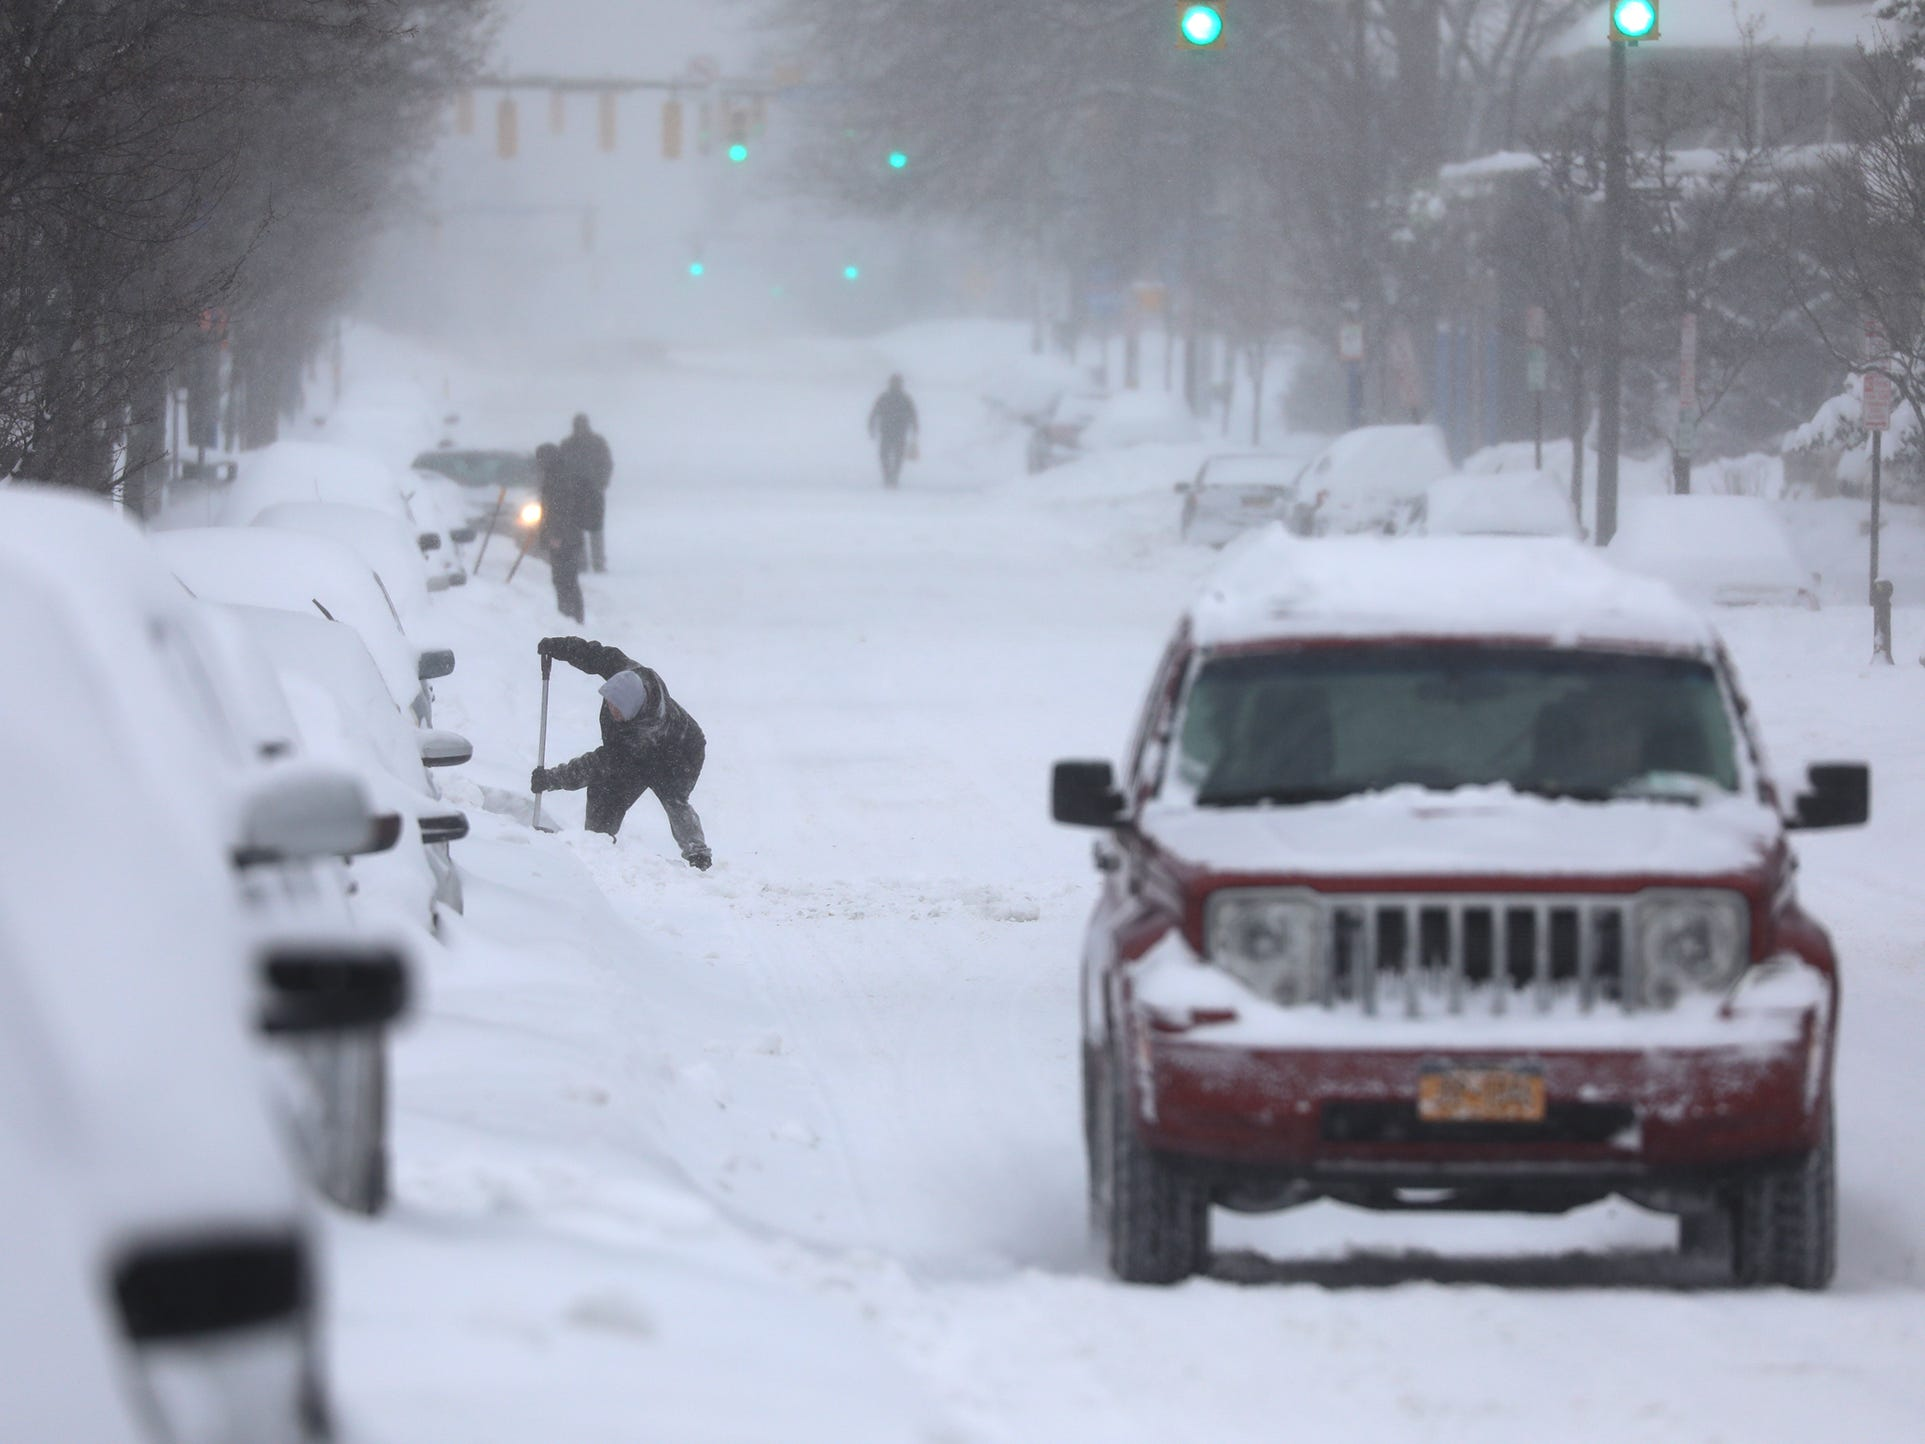 THE PHOTO:  Over a foot of snow fell overnight, with advisories issued about unnecessary travel and cold temperatures.  Many people heeded the warnings and stayed home, Sunday, Jan. 20, 2019.  FROM TINA:  Snow covered streets and cars with a person digging out their car made this a perfect snow storm shot.